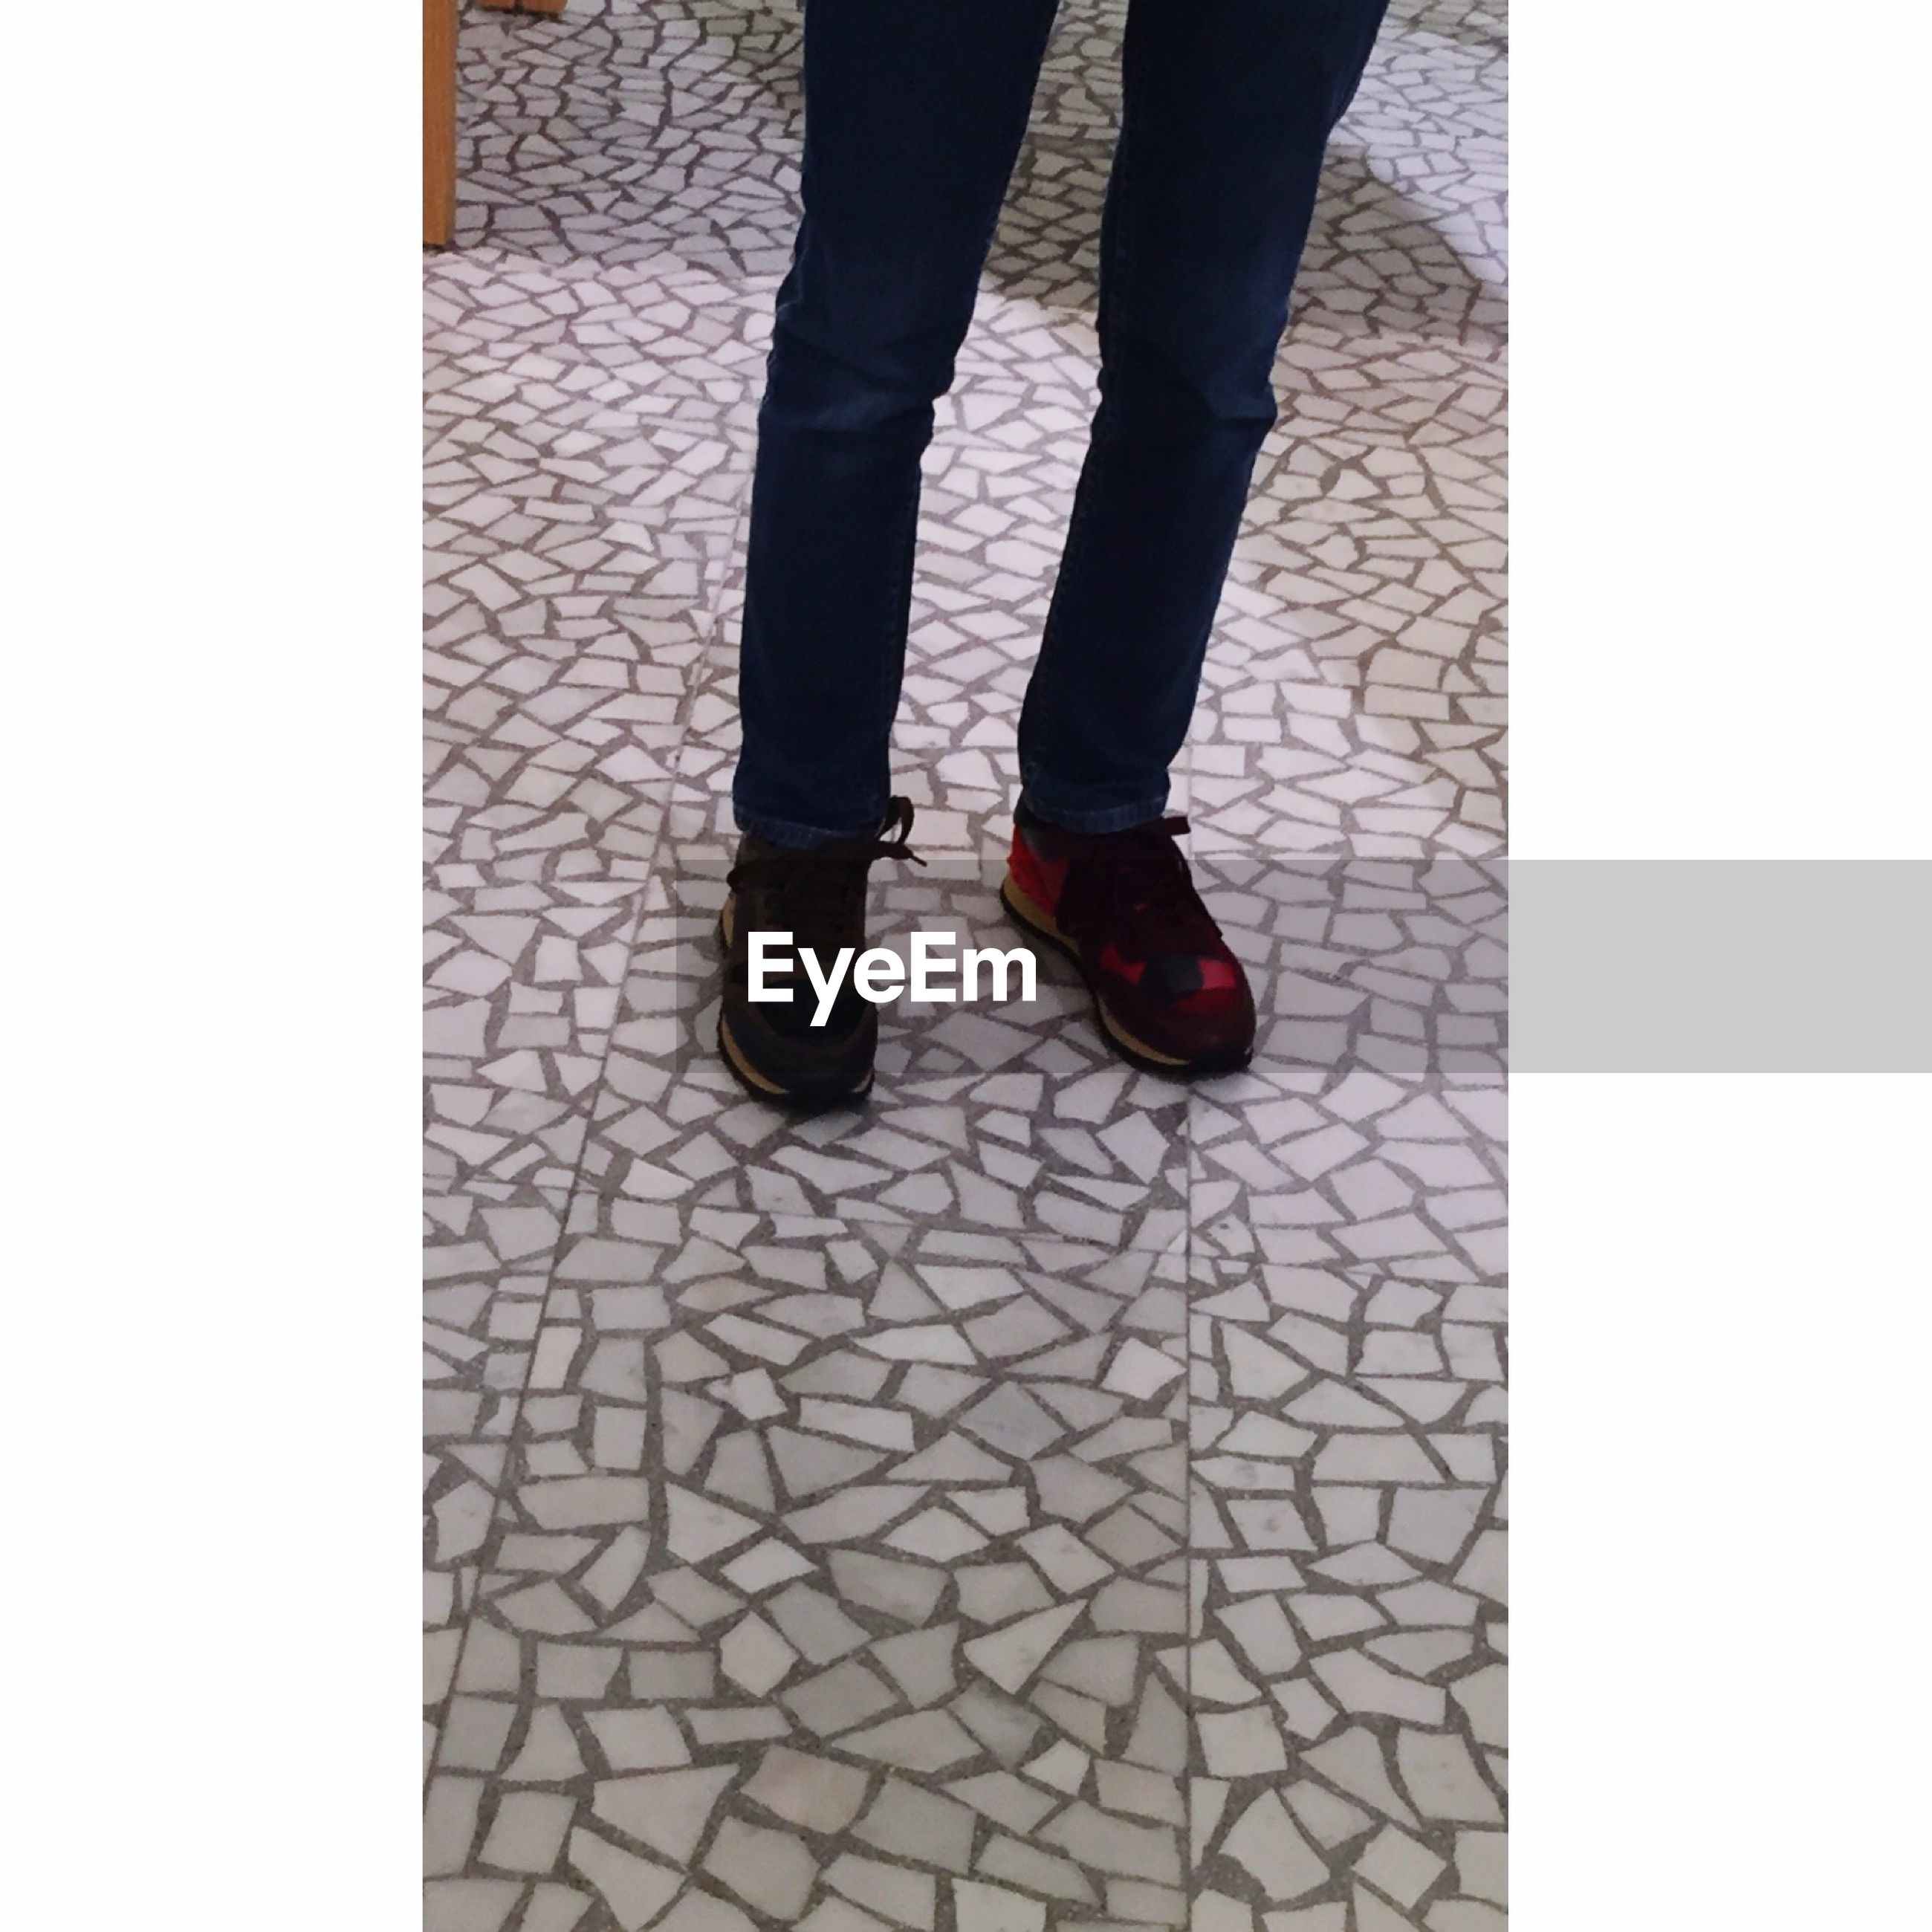 low section, person, shoe, standing, lifestyles, human foot, men, footwear, jeans, transfer print, walking, leisure activity, auto post production filter, unrecognizable person, tiled floor, paving stone